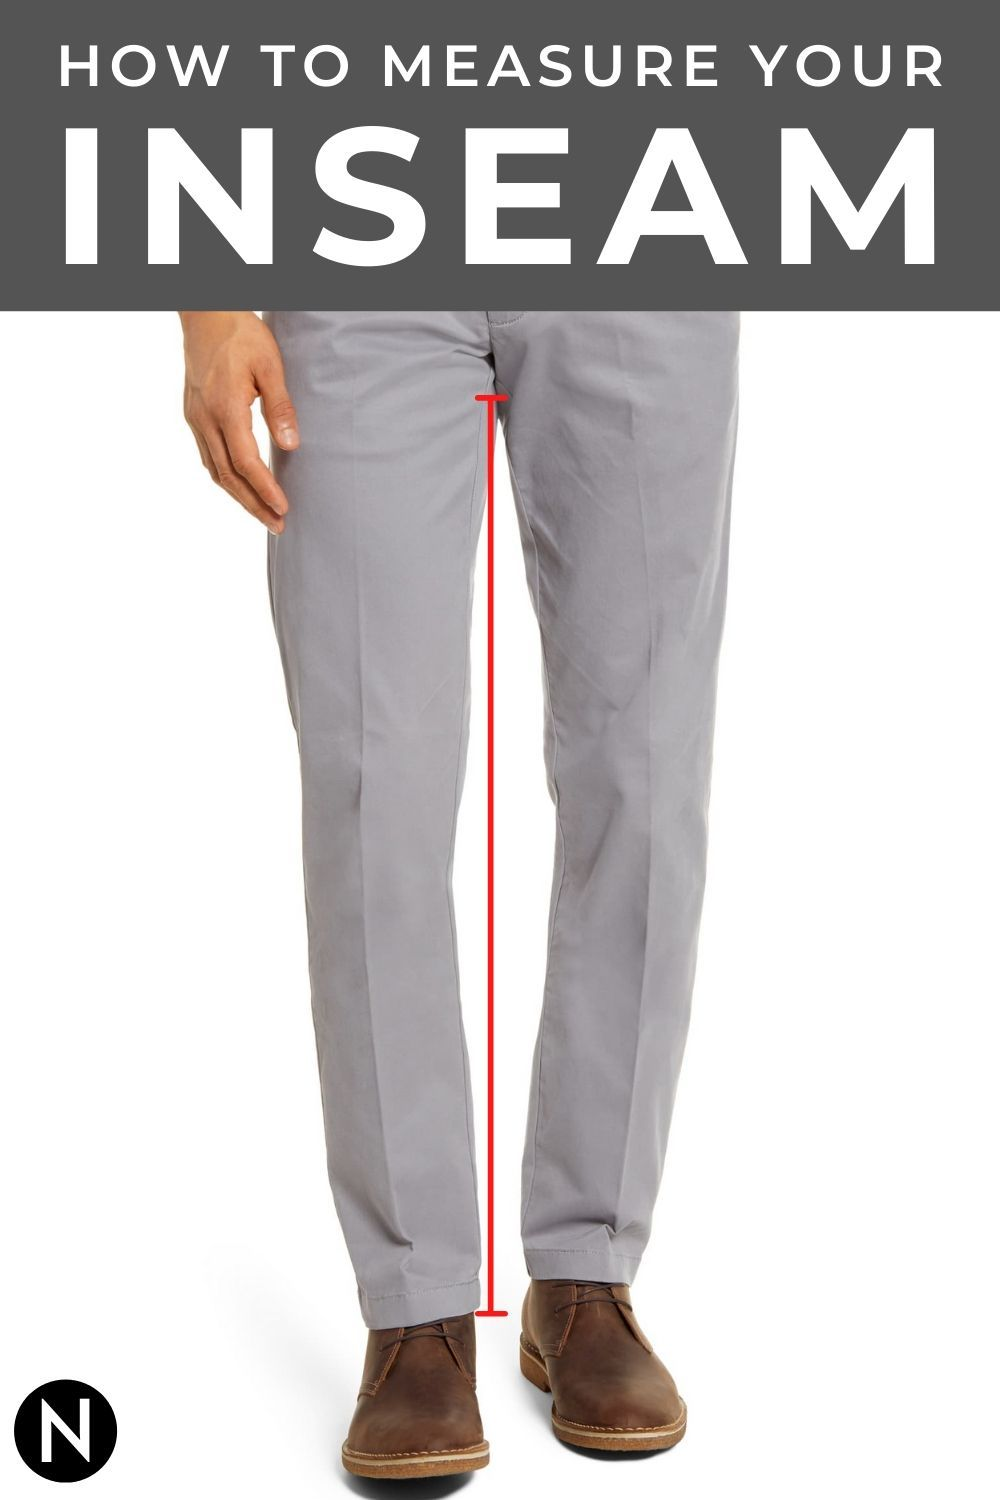 How To Measure Your Inseam In 2020 Inseam Mens Pants How To Measure Yourself